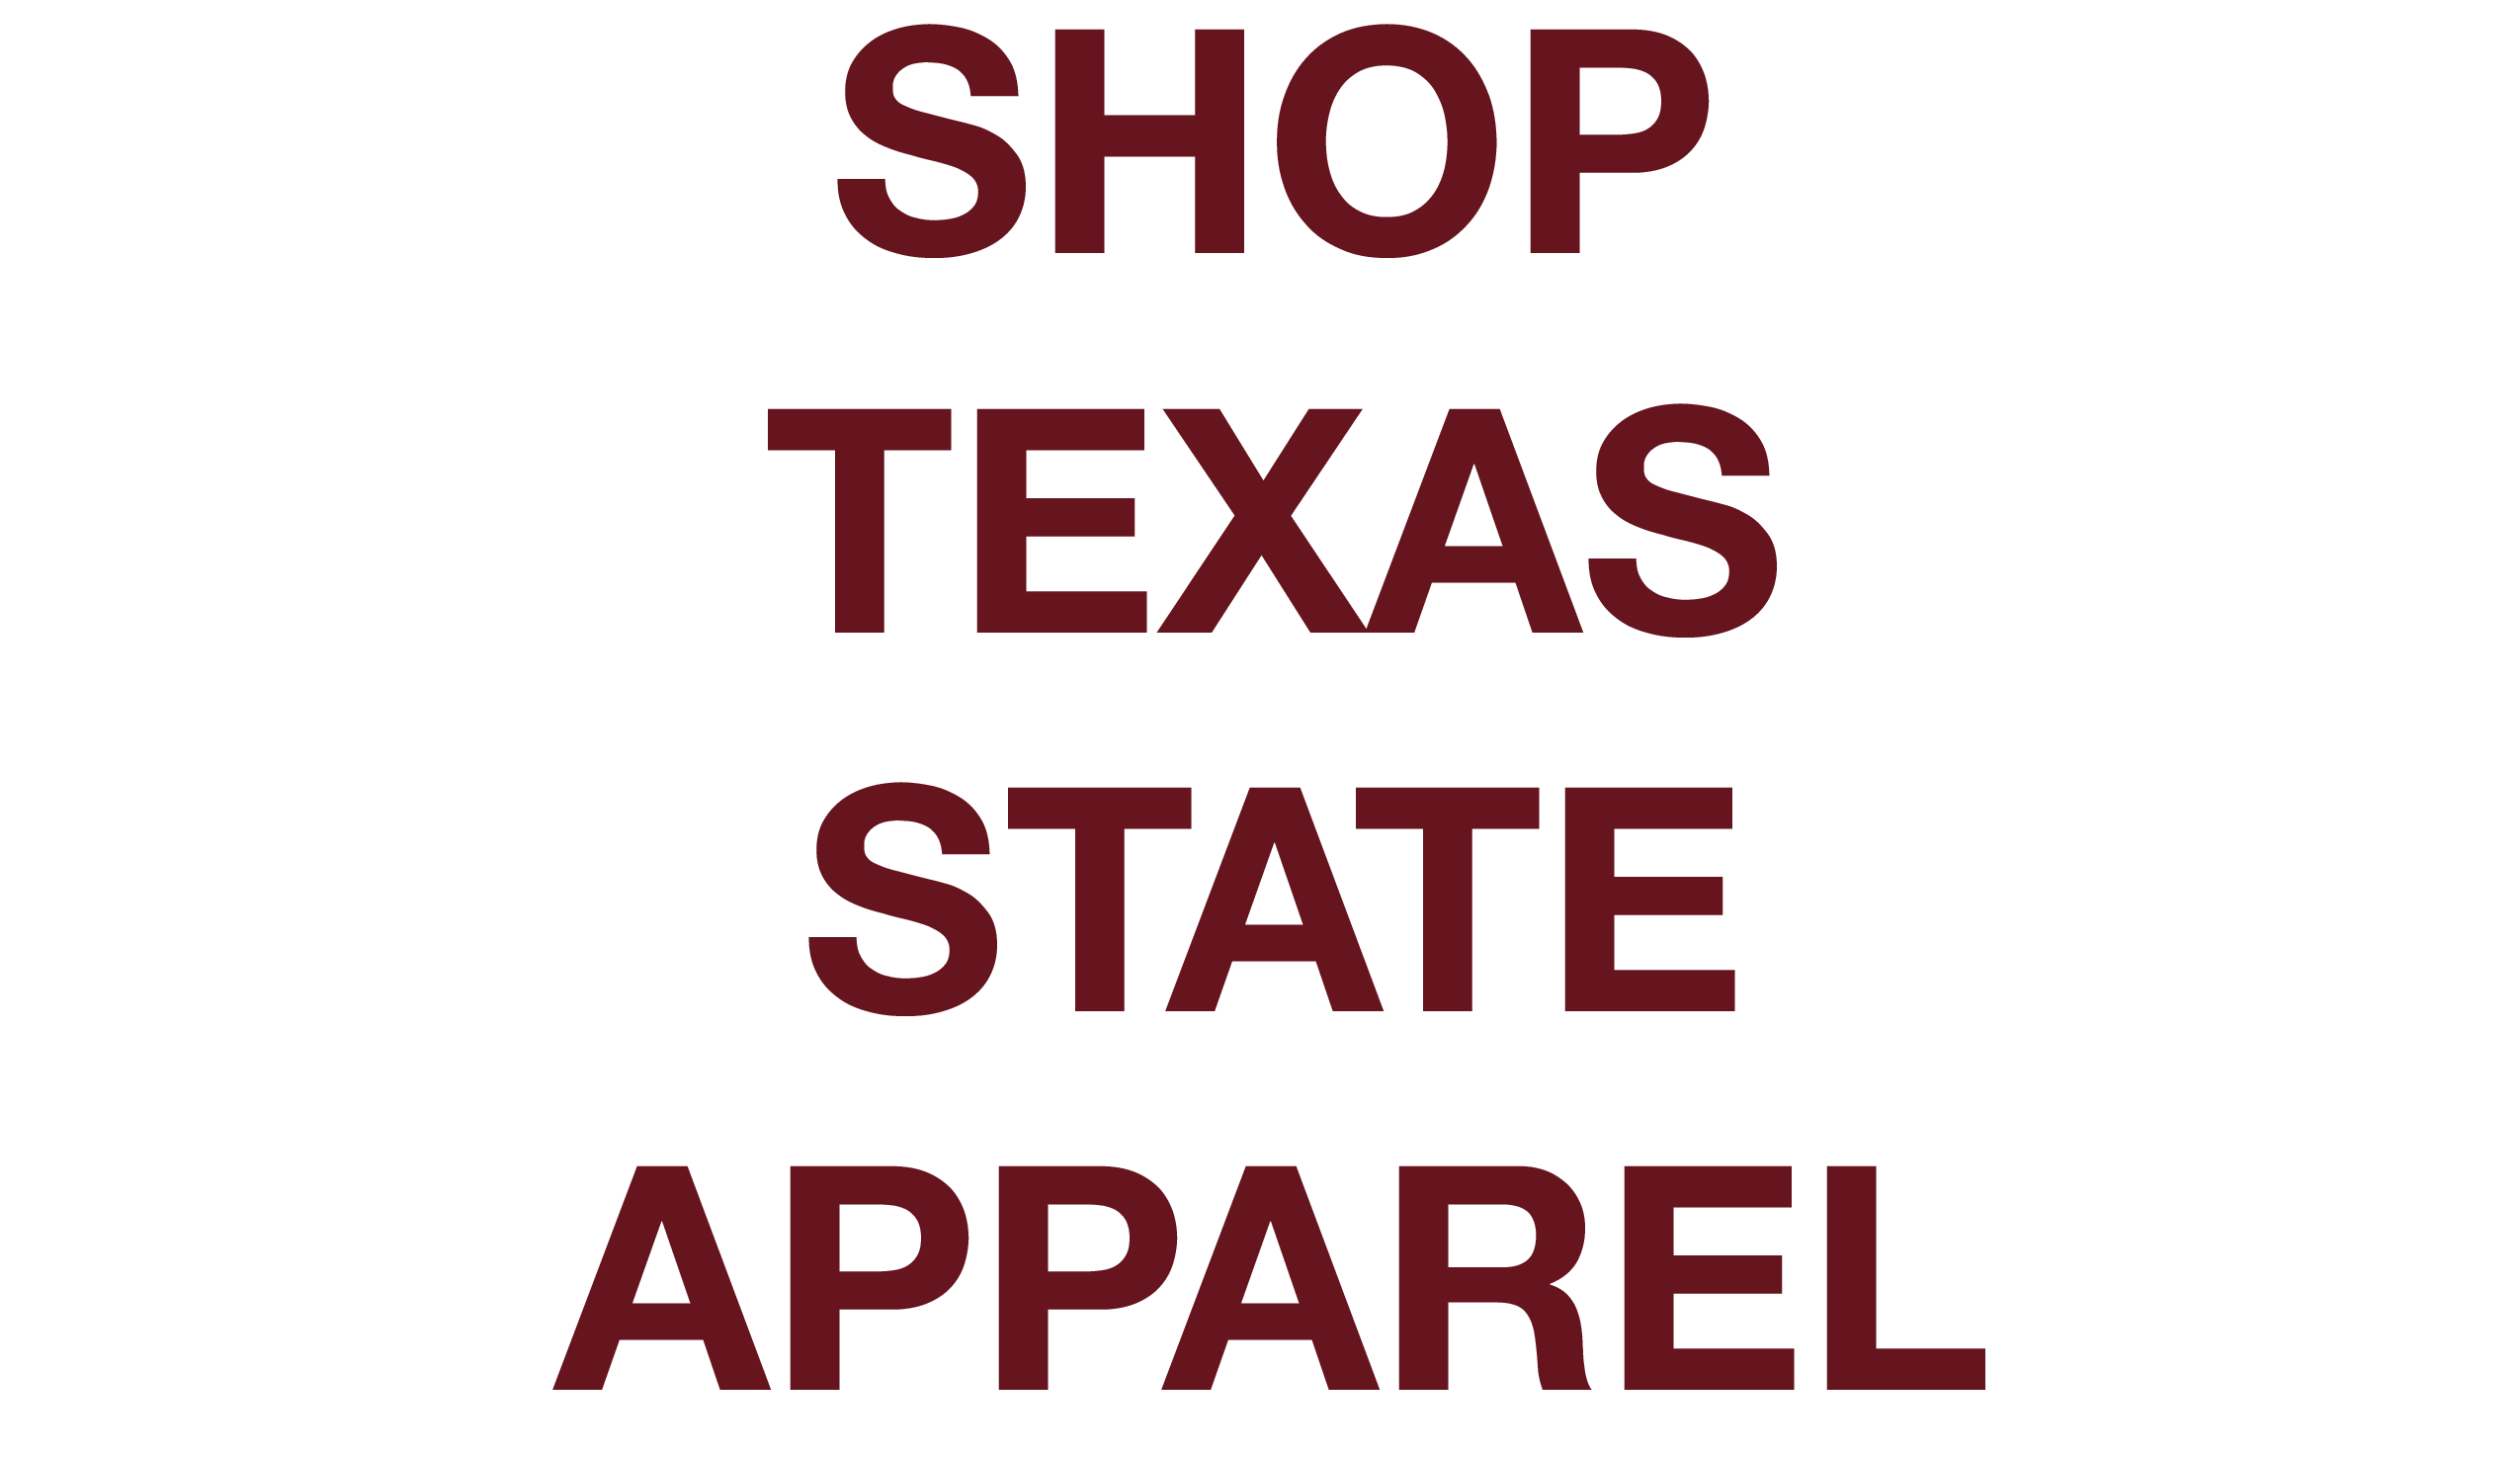 Shop Custom Apparel, Shop Texas State Apparel, Texas State University Apparel, TXST Apparel